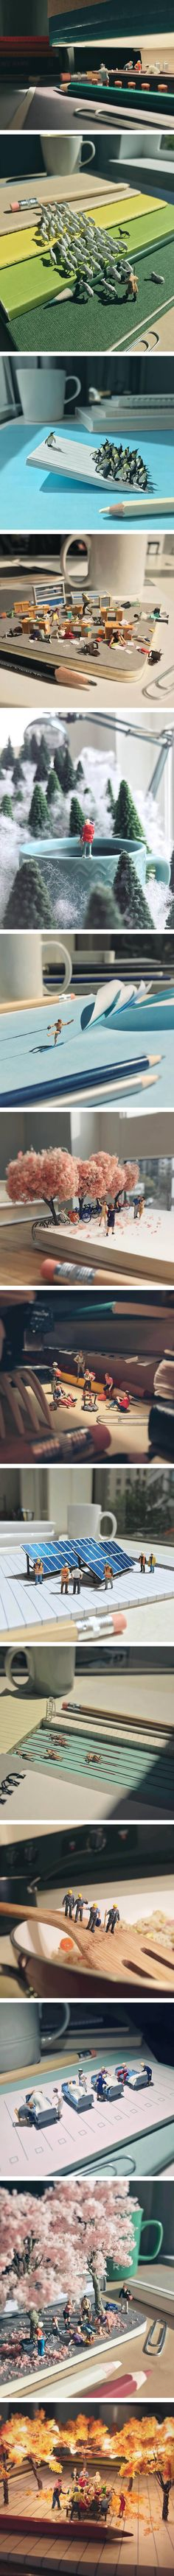 Miniature scenes set amongst office supplies